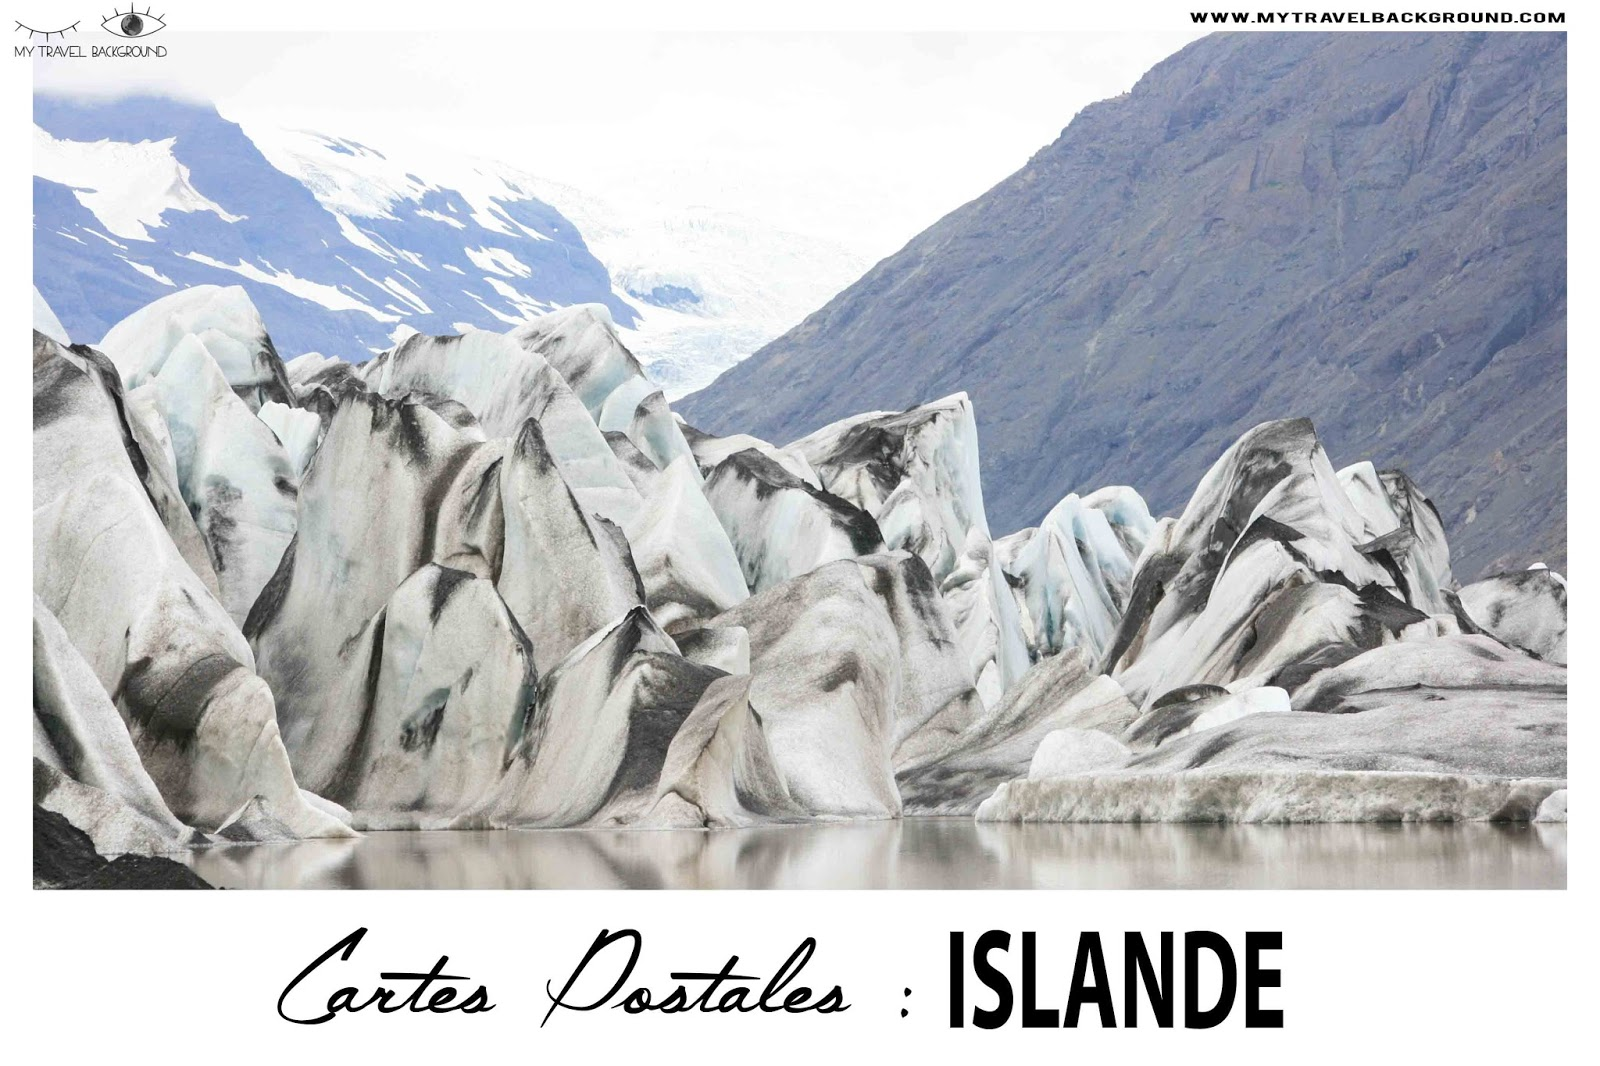 My Travel Background : Cartes Postales d'Islande